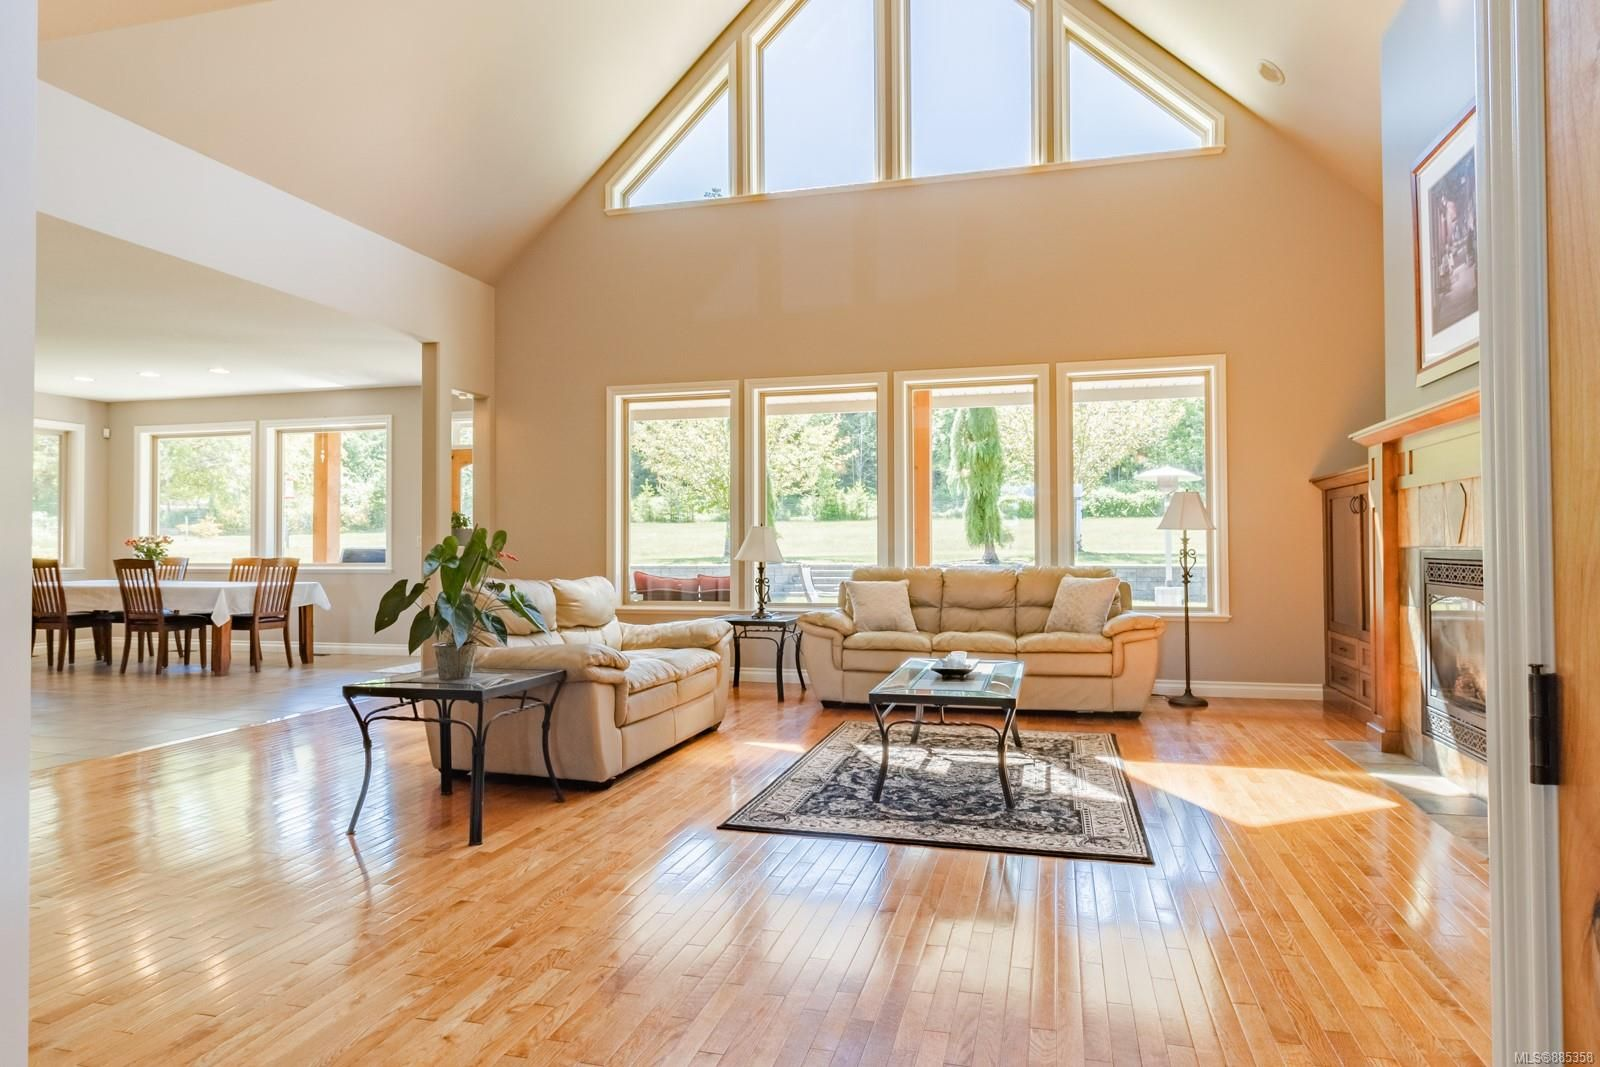 Photo 11: Photos: 2850 Peters Rd in : PQ Qualicum Beach House for sale (Parksville/Qualicum)  : MLS®# 885358